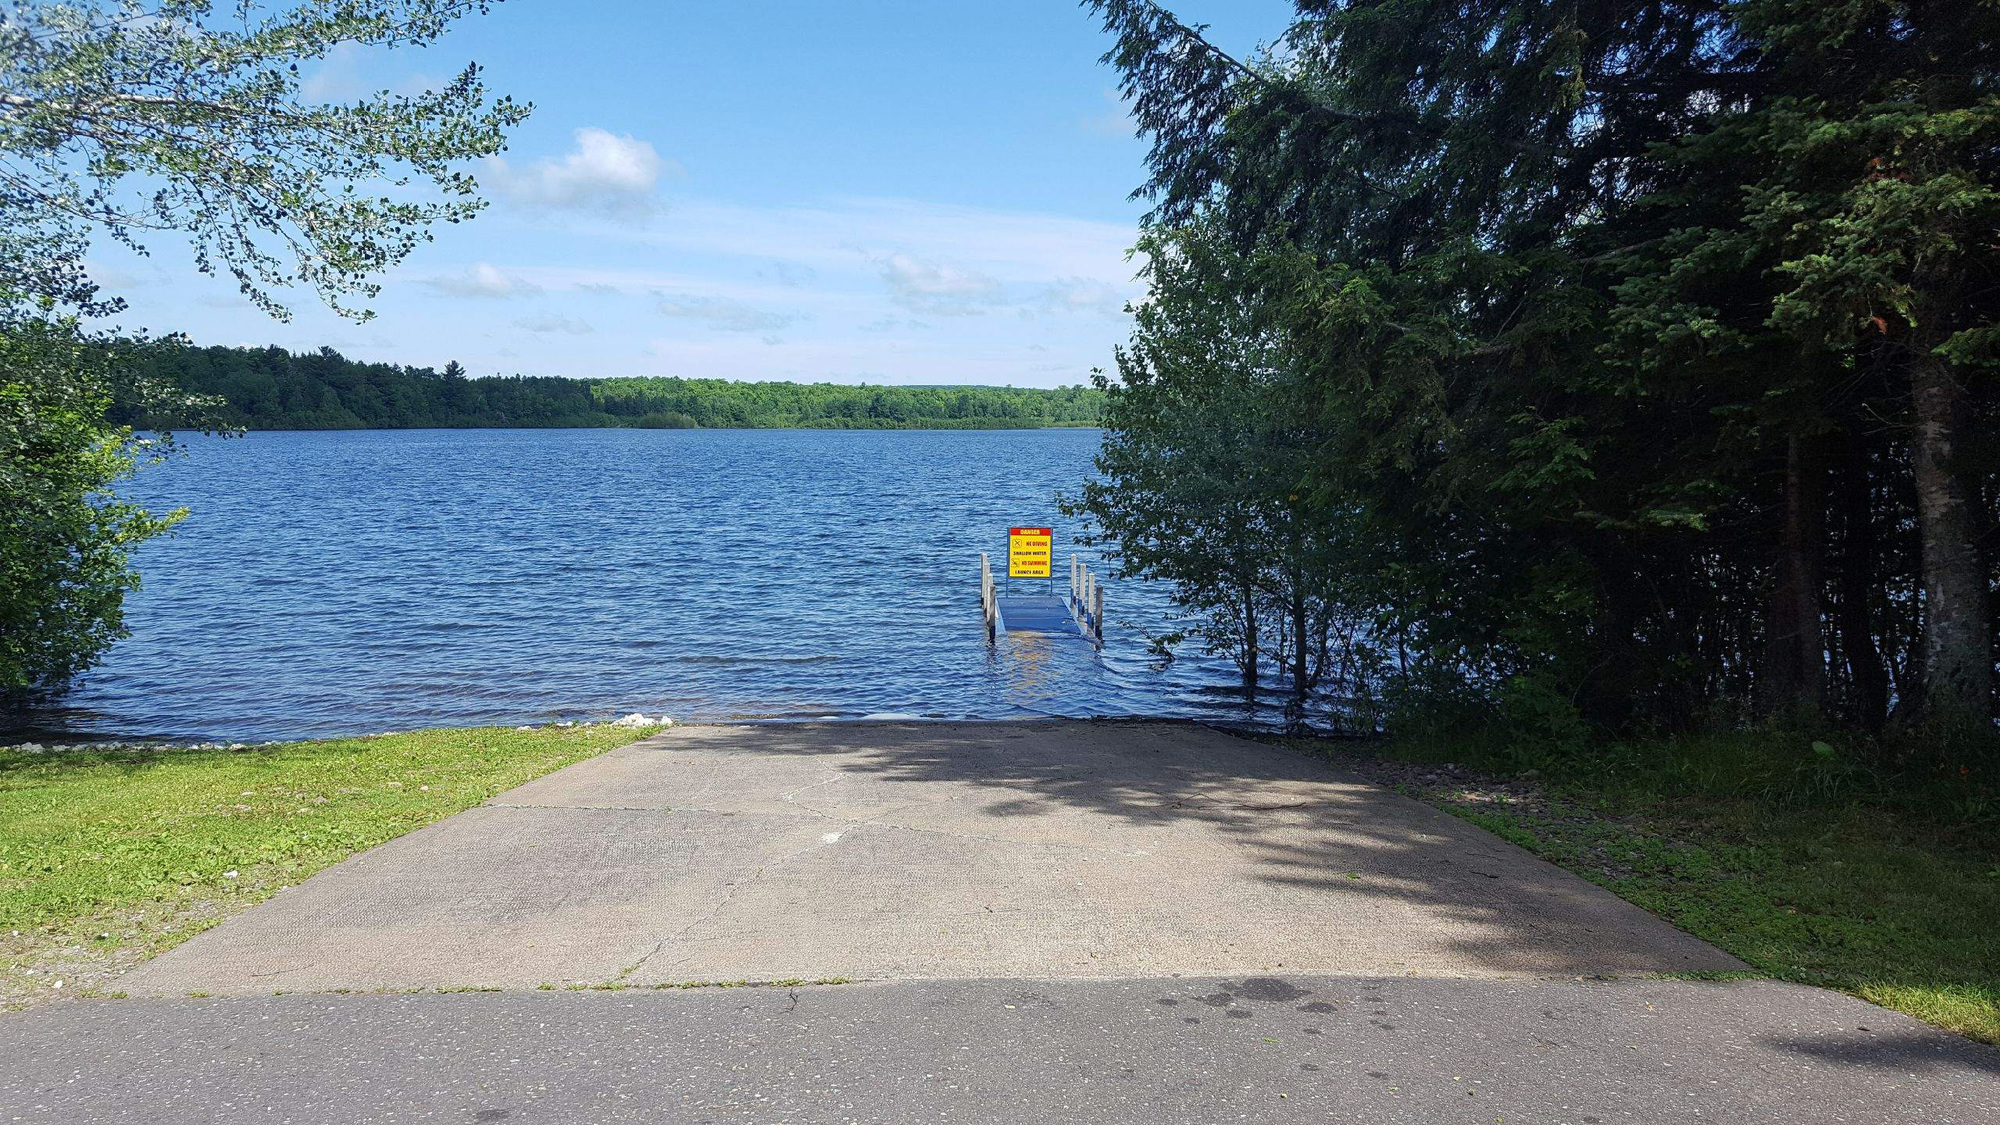 The boating access site at Indian Lake in Iron County, shown here, will be temporarily closed for installation of a new concrete boat ramp.